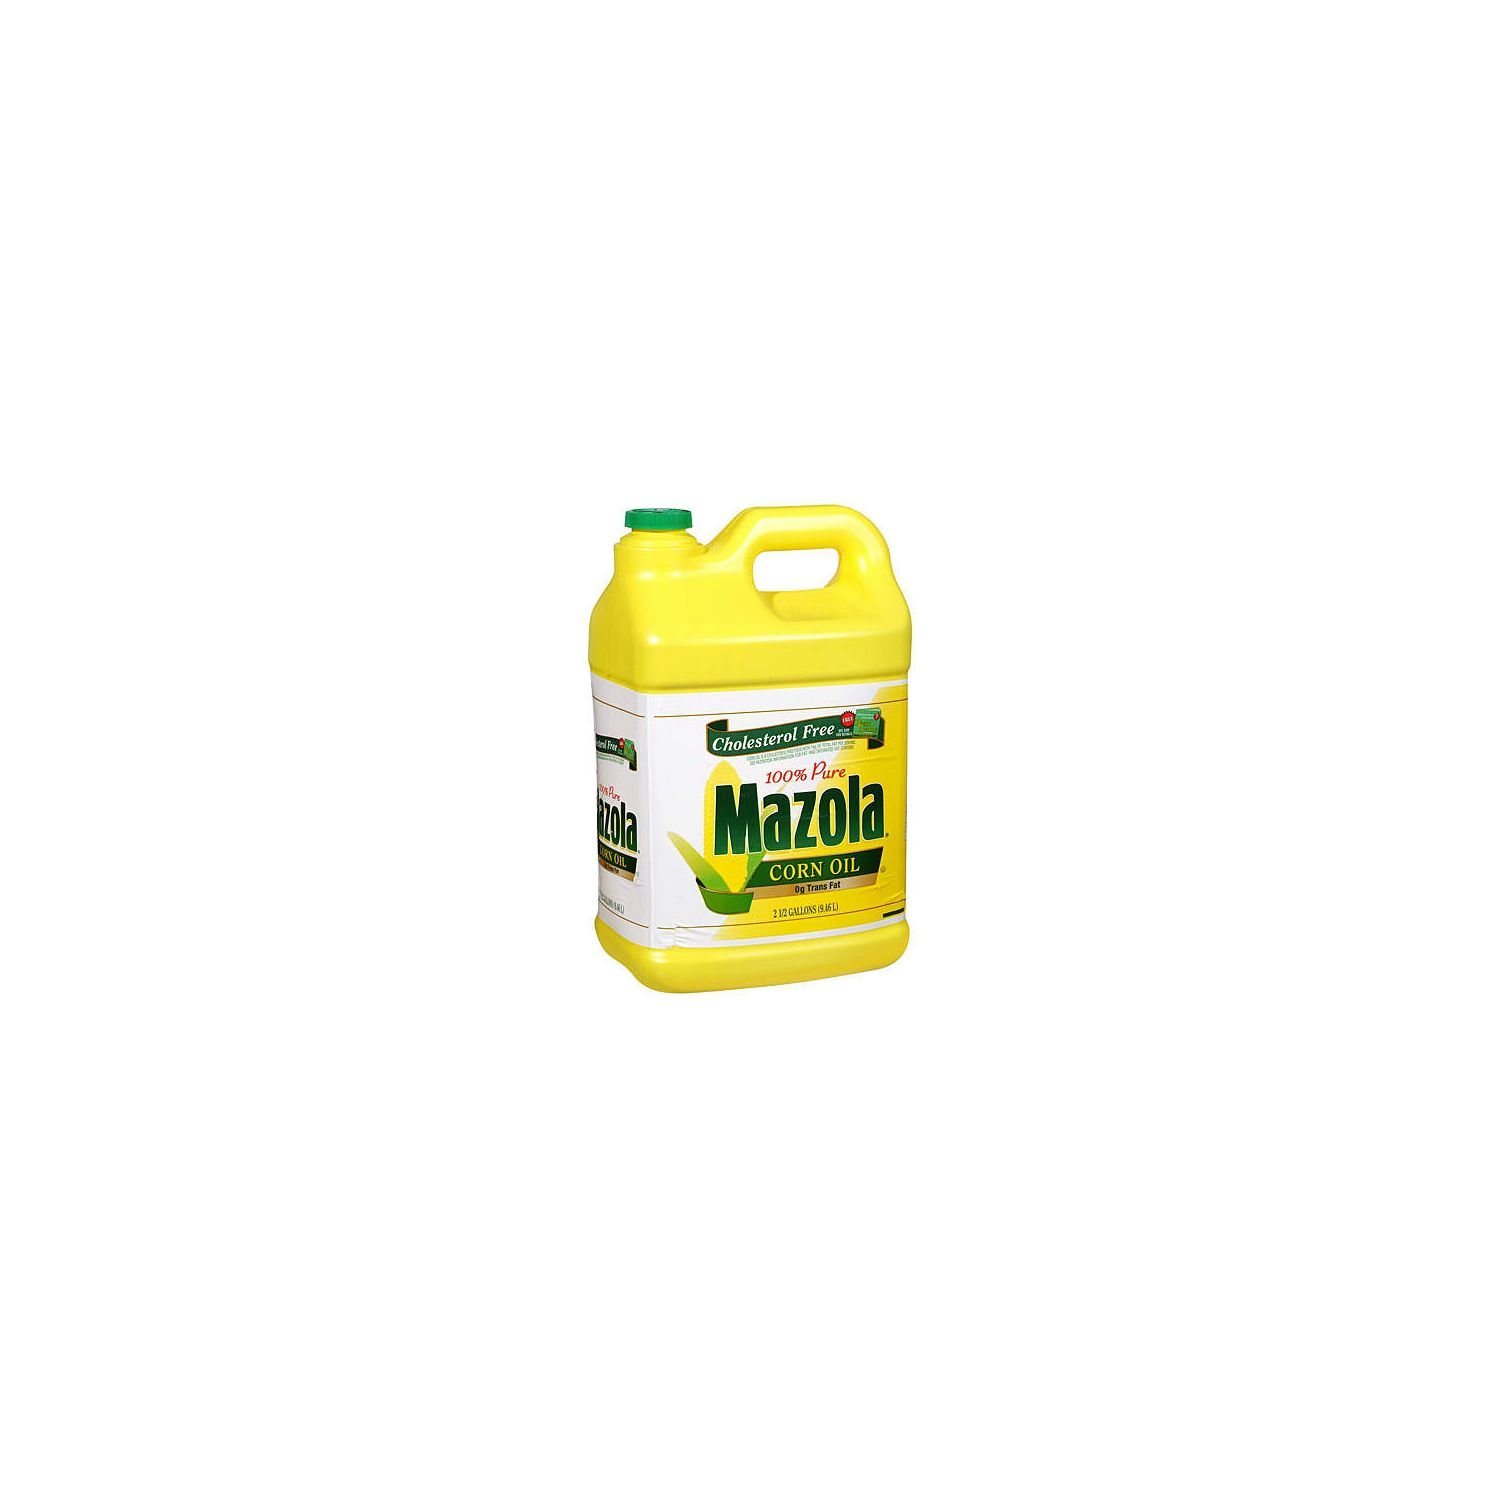 Mazola Corn Oil - 2.5 Gallon jug